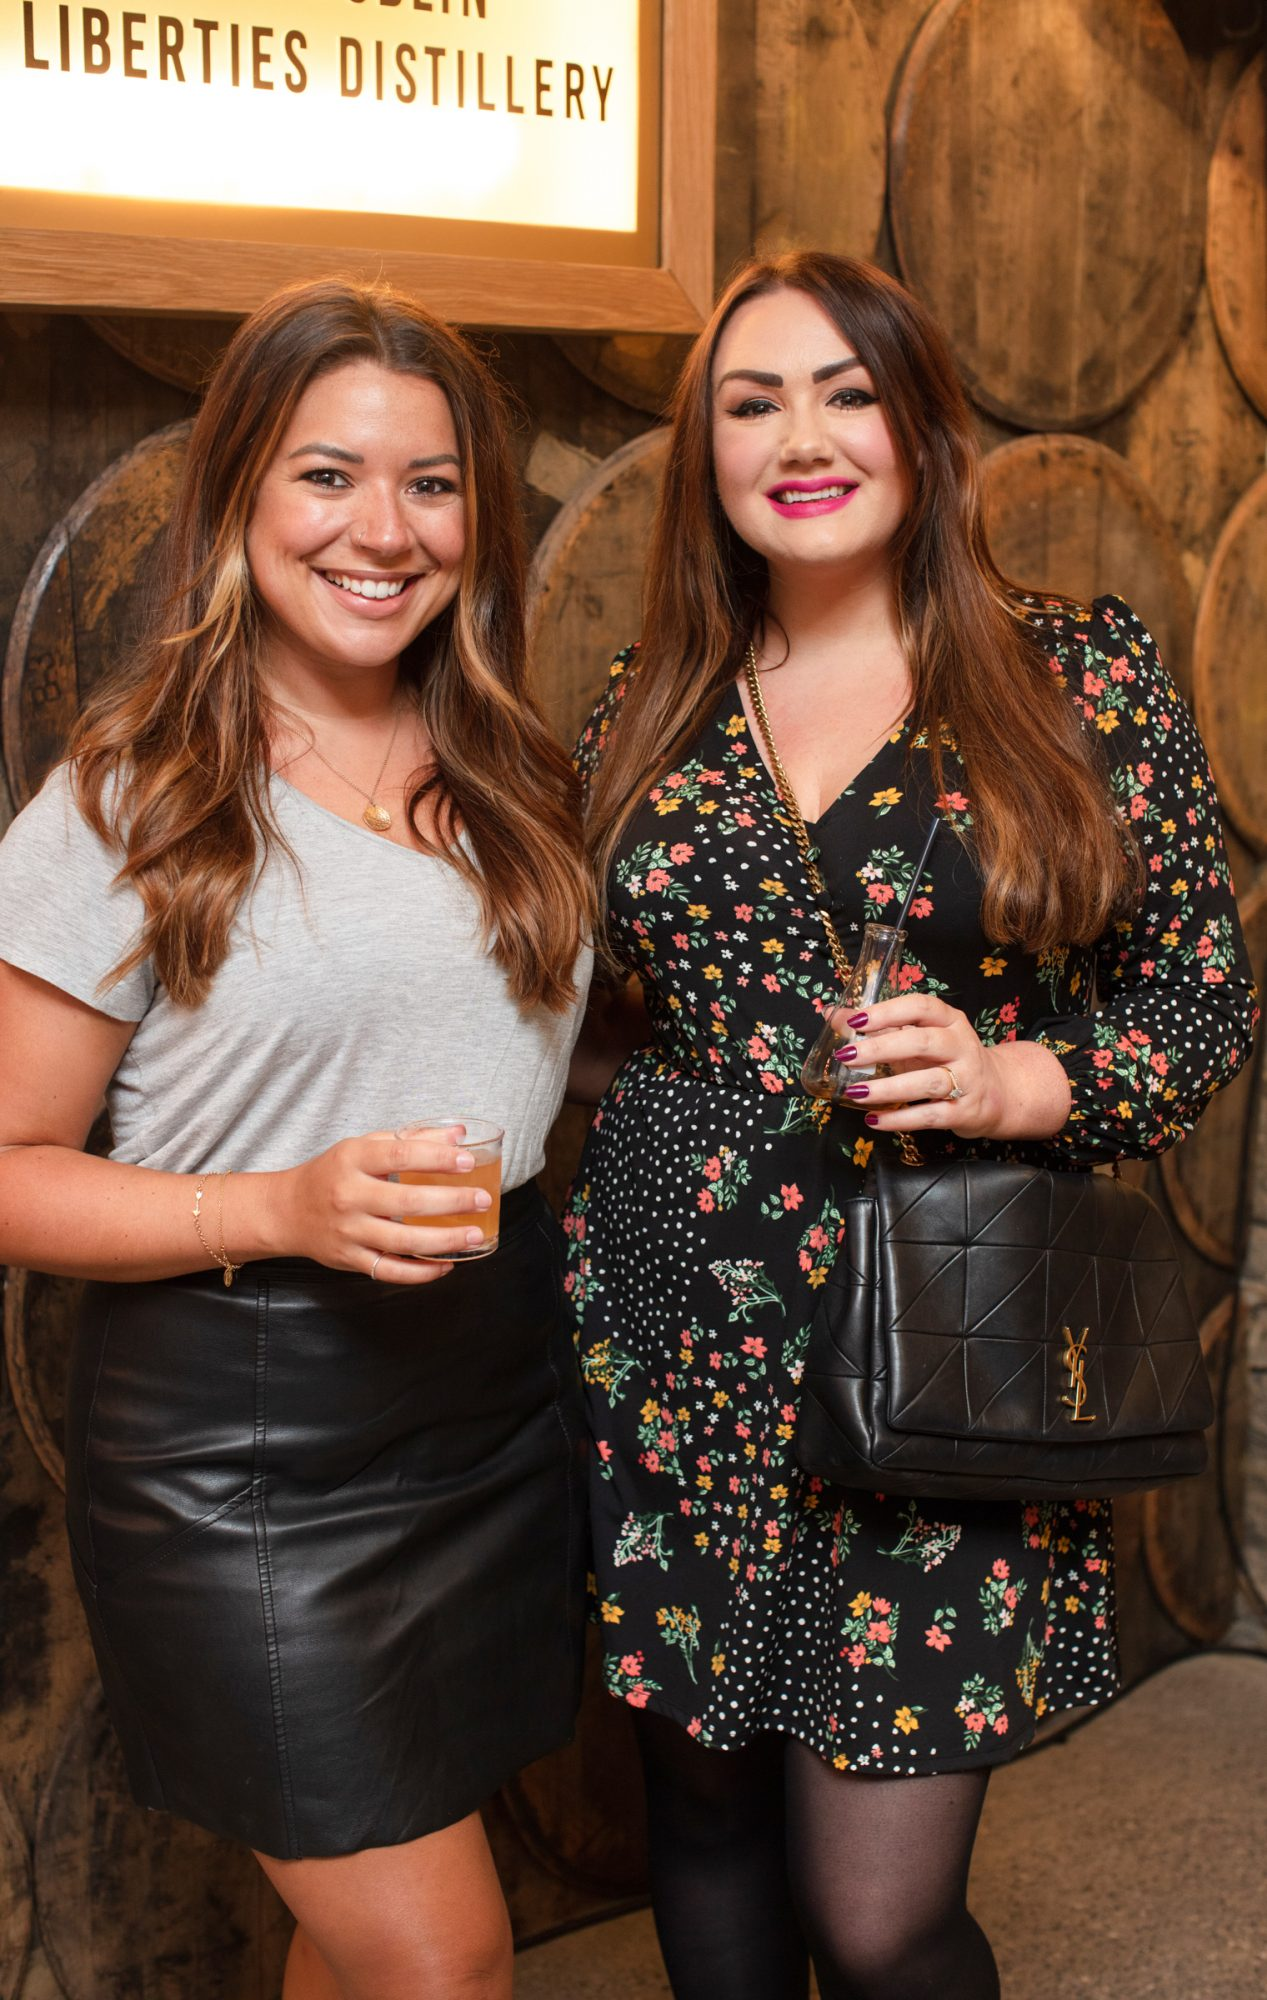 Nadia El Ferdaousi & Vicki Notaro pictured at the preview of The Dublin Liberties Distillery, the much anticipated new craft distillery in the heart of the Liberties. Photo: Anthony Woods.